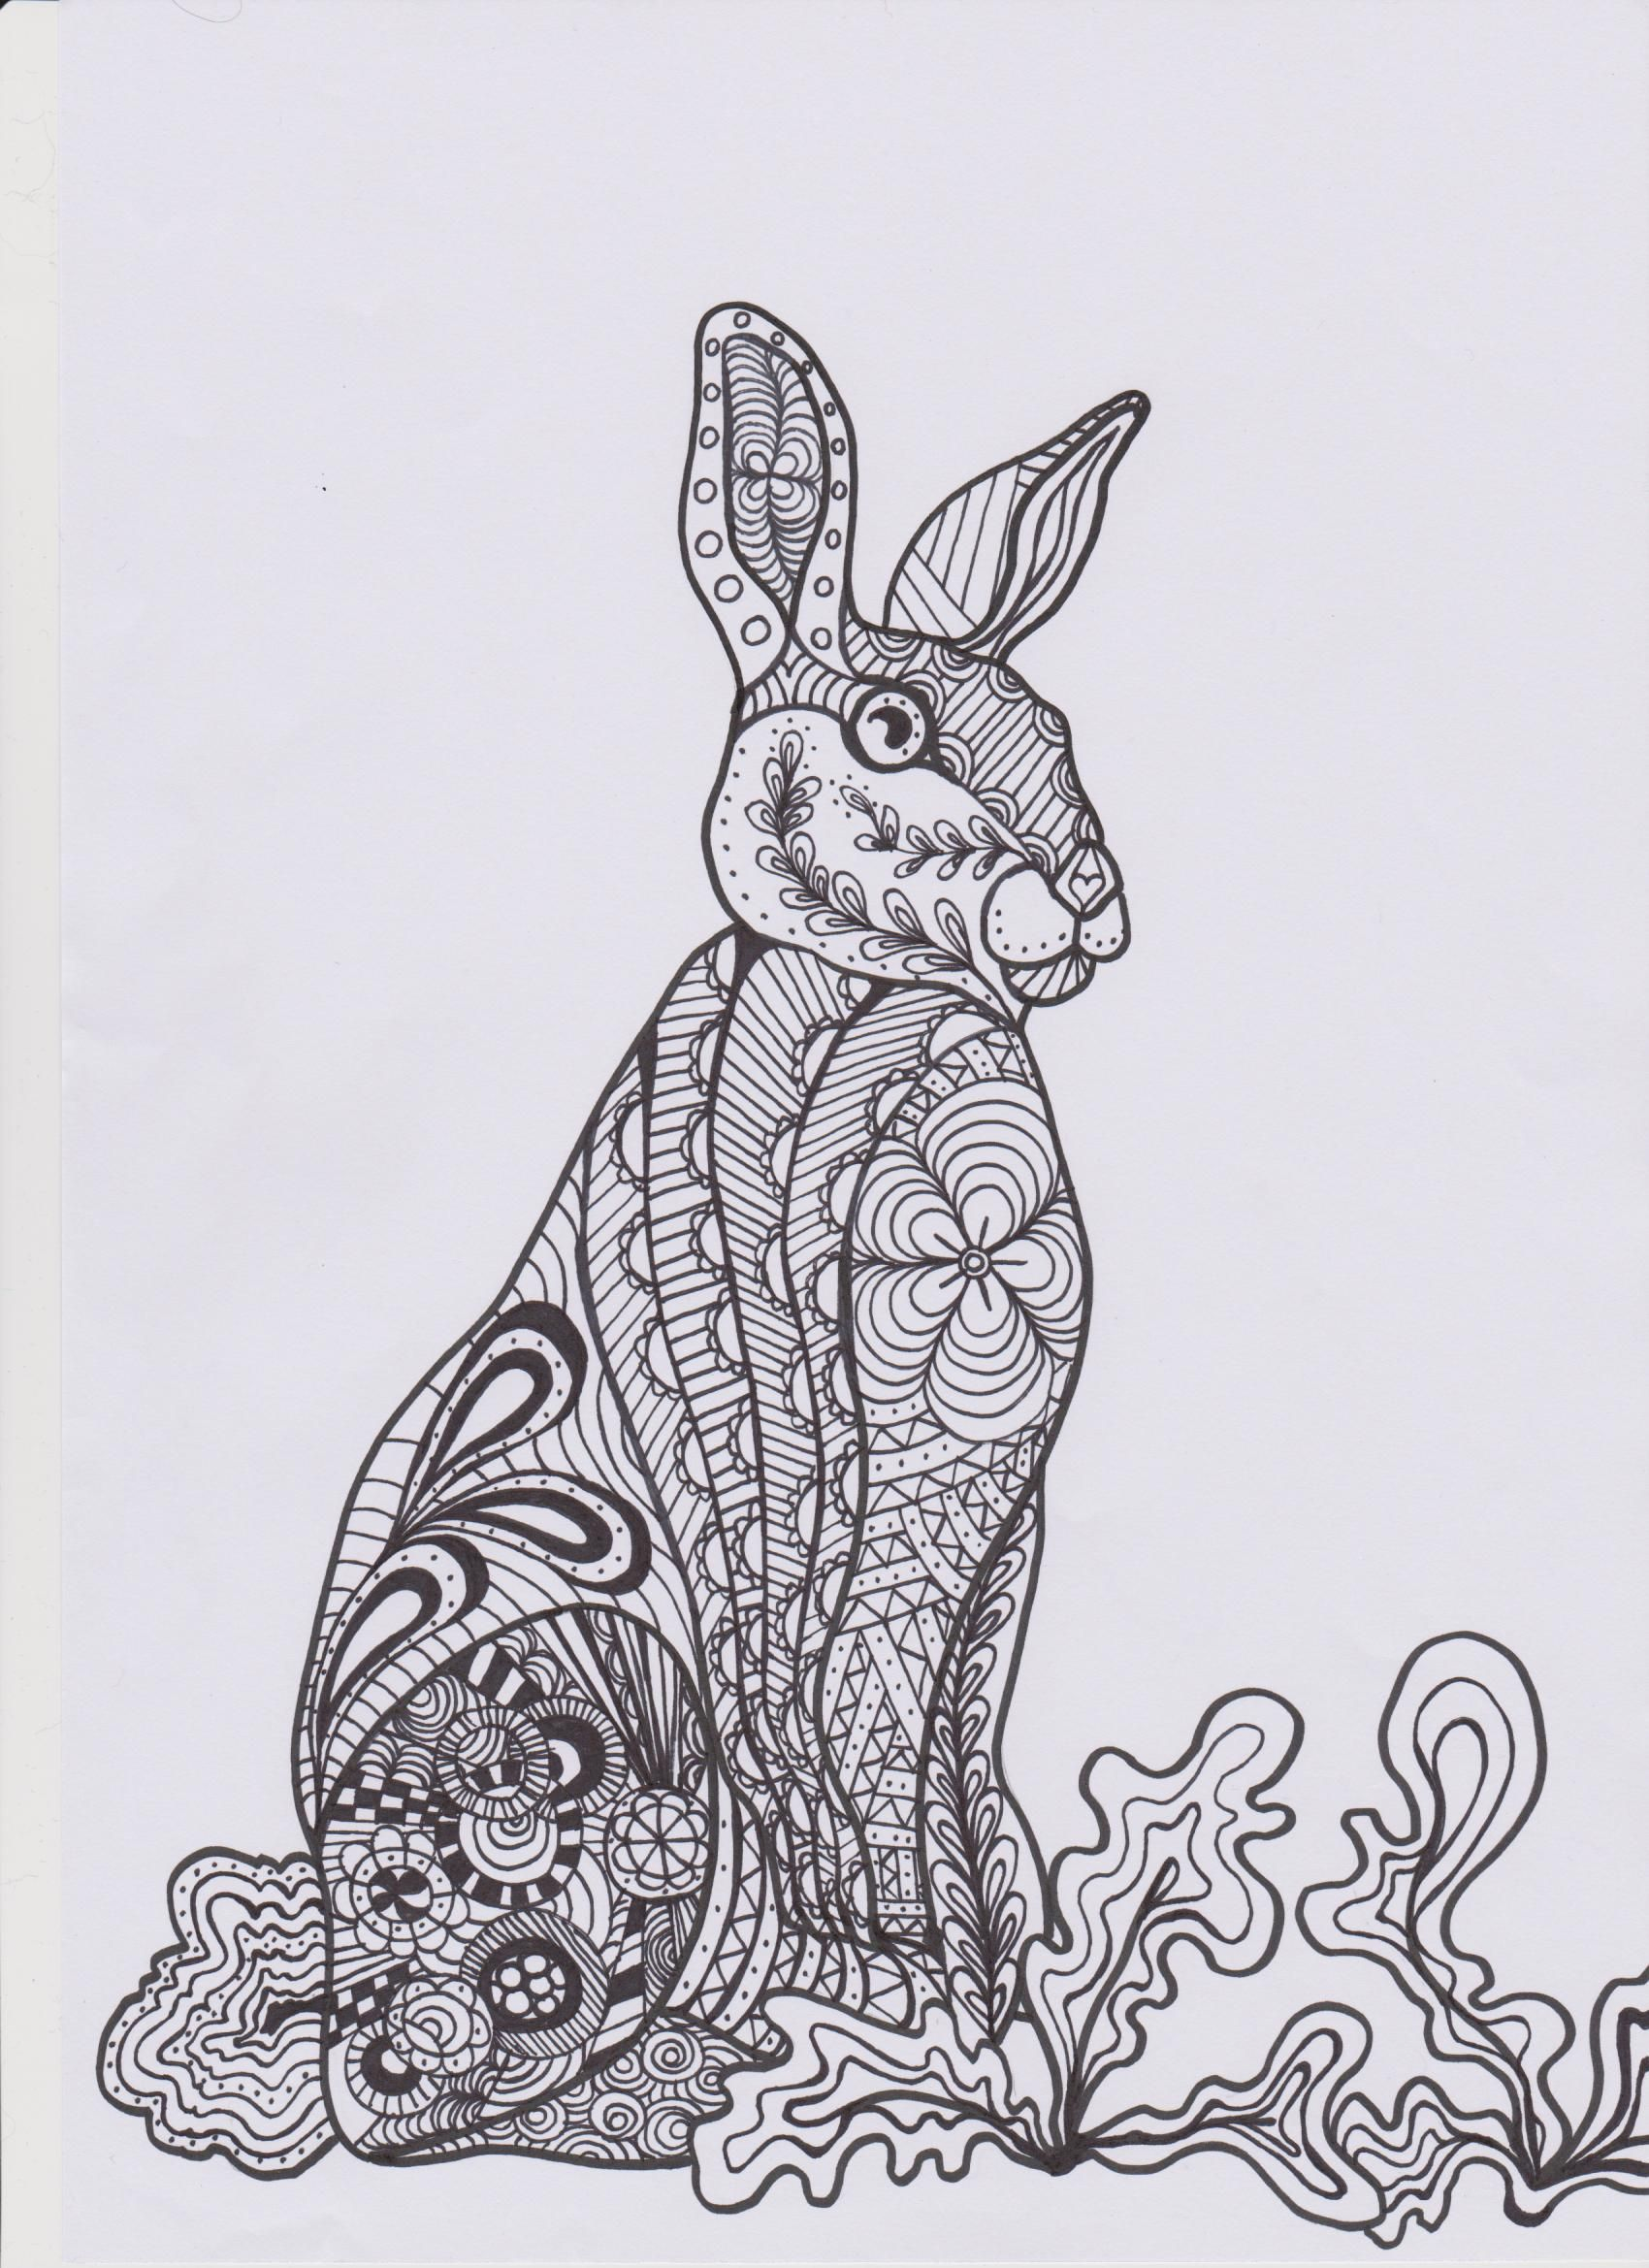 Zentangle Bunny Colouring In Page Art Handouts Coloring Pages